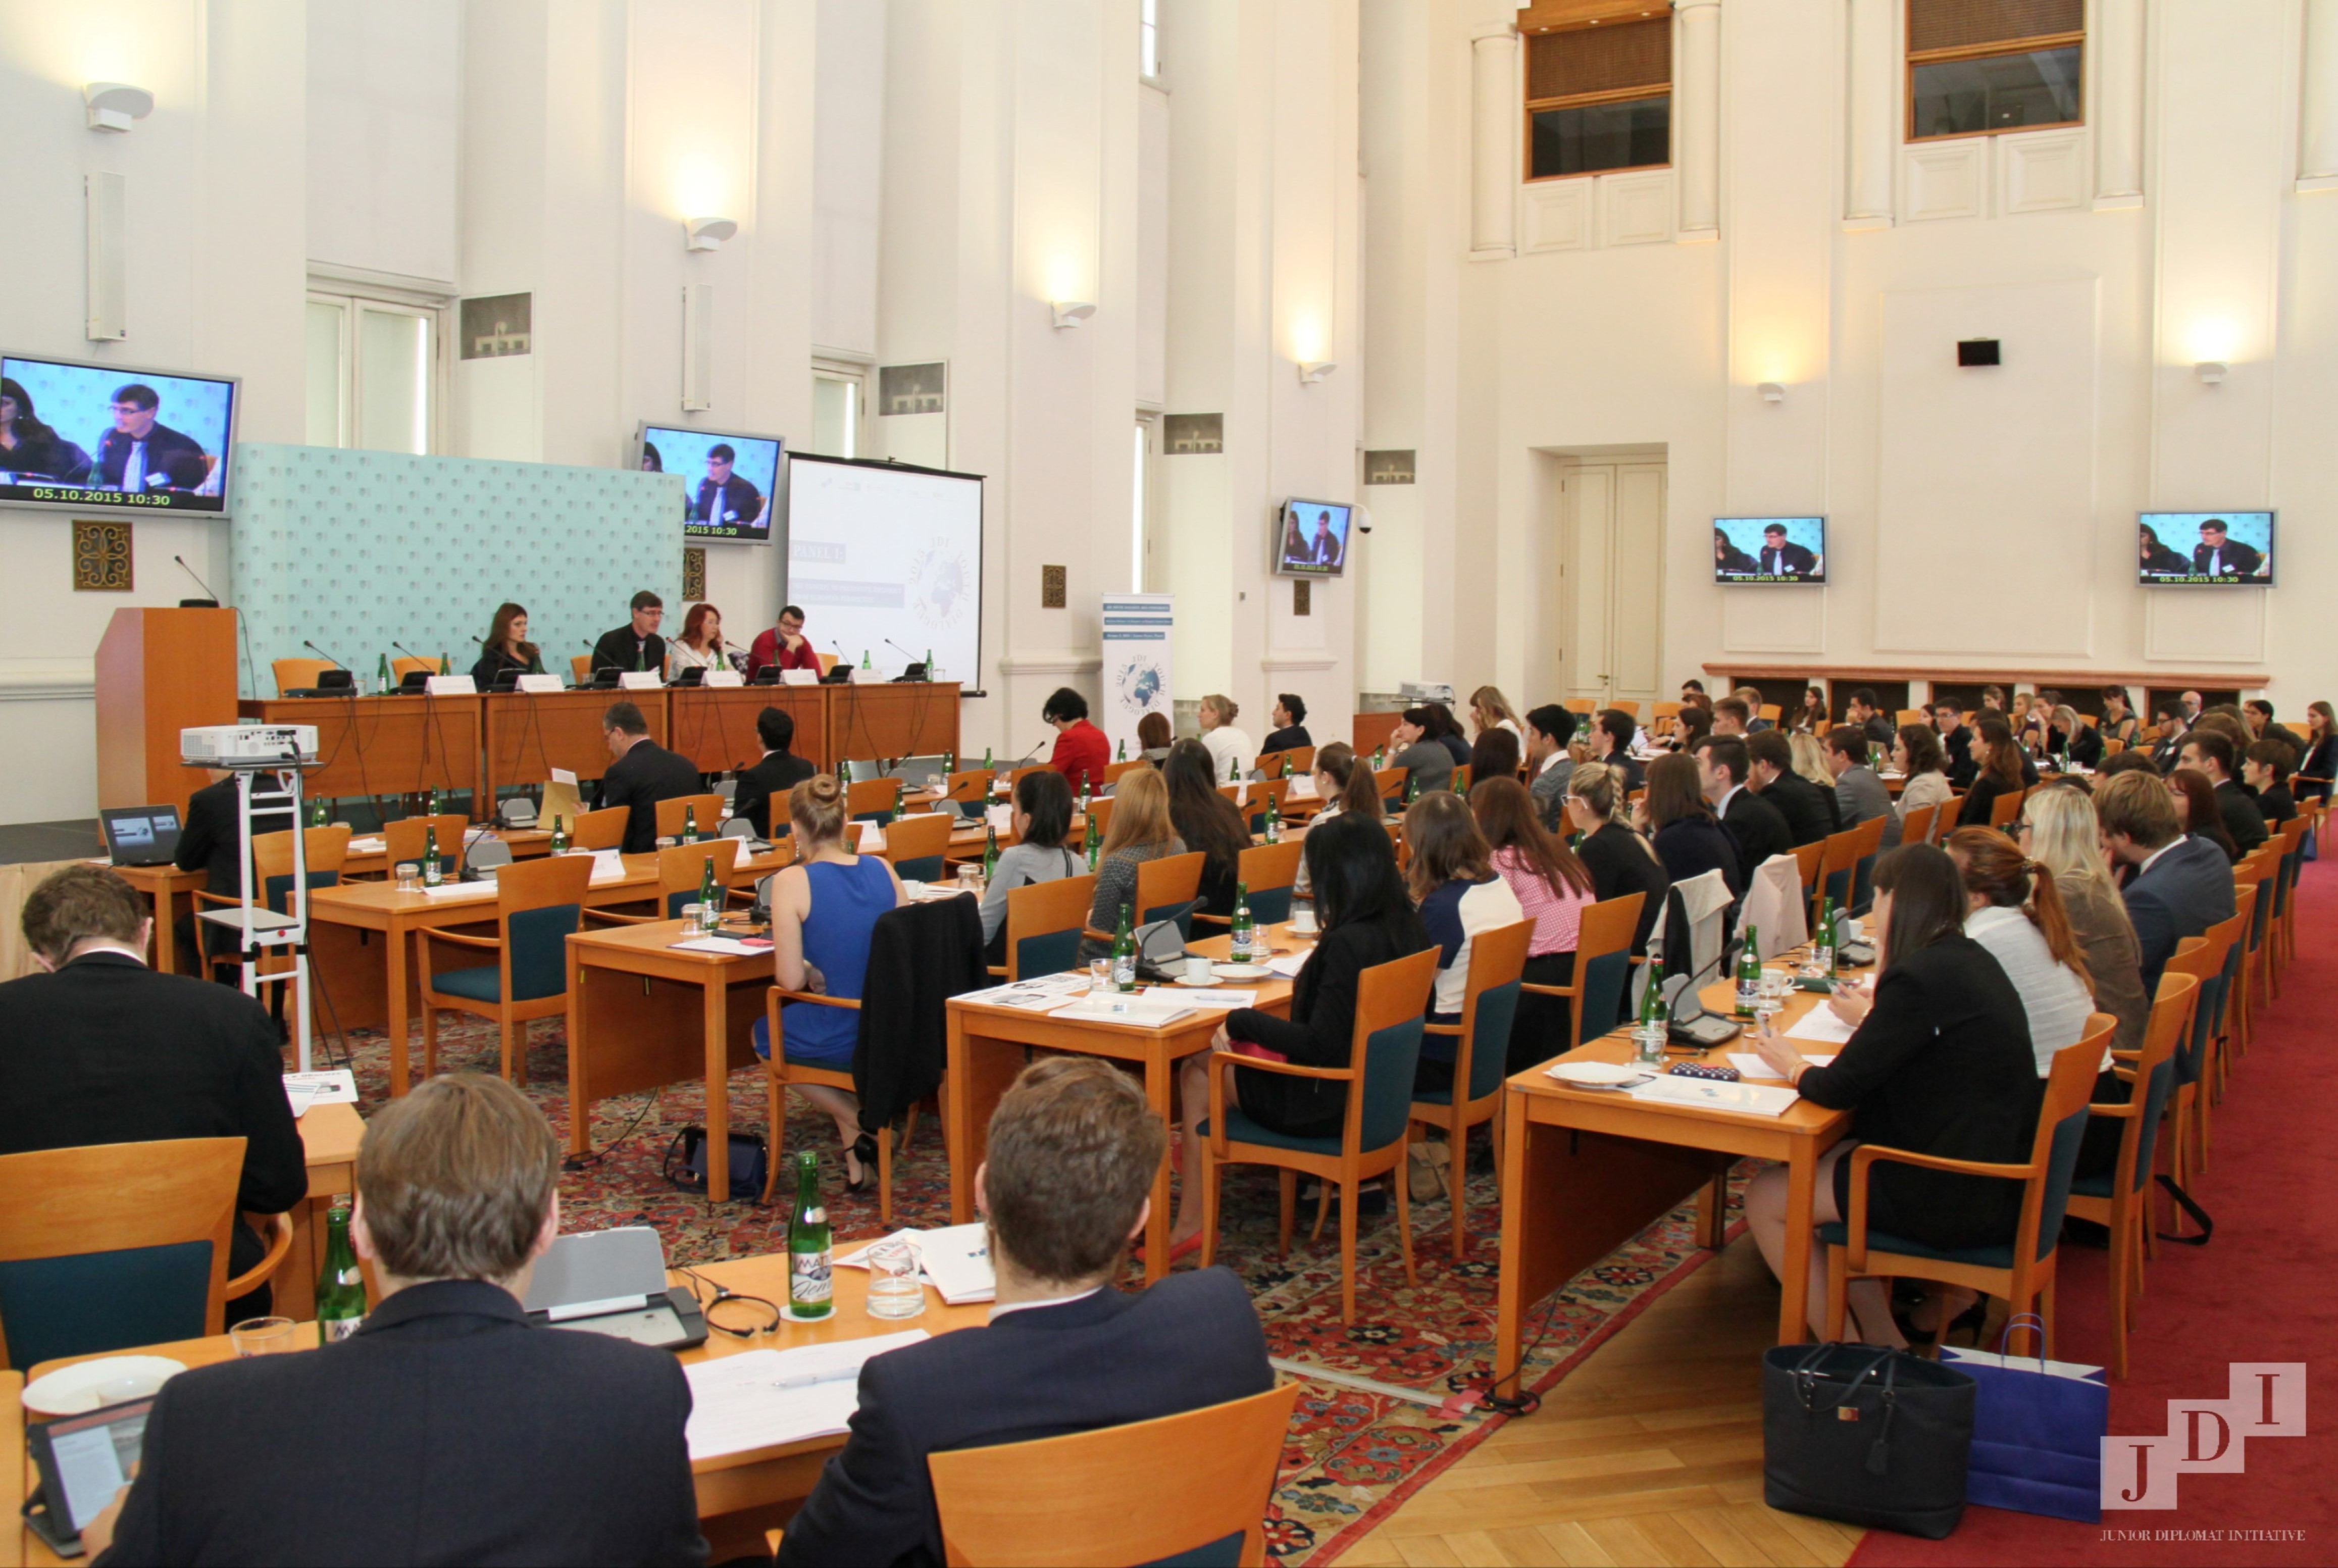 Panel 1: The Concept of Preventive Diplomacy from the European Perspective